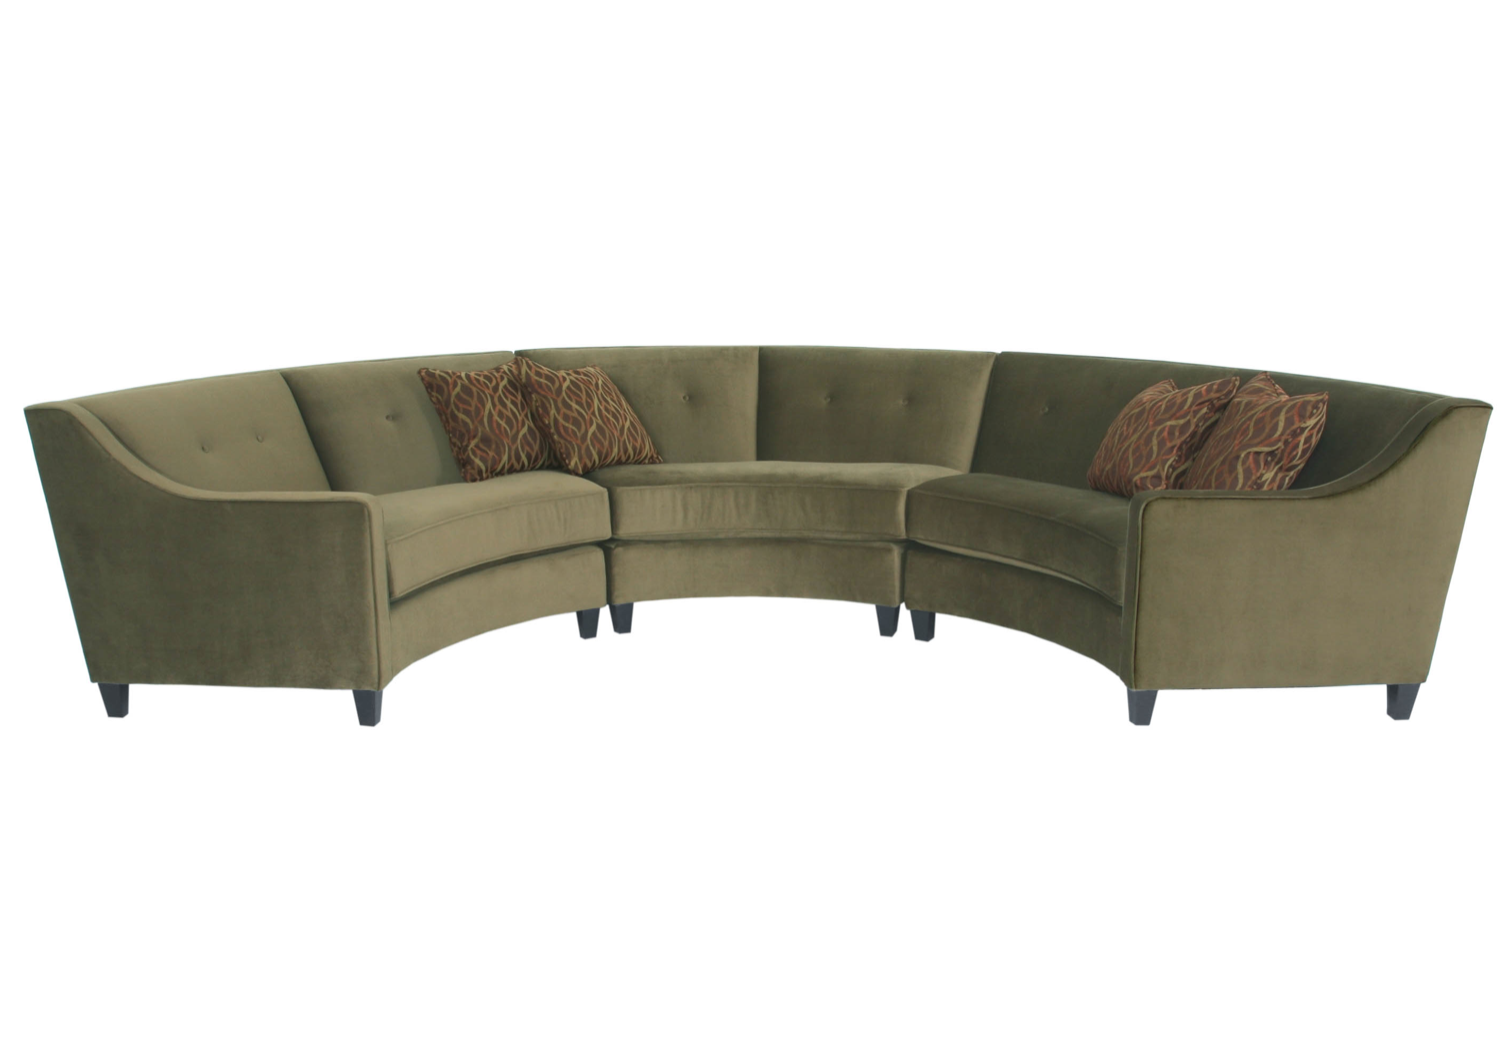 Curved Couch Revit amp Sofa Ideas Interior Design Sofaideasnet